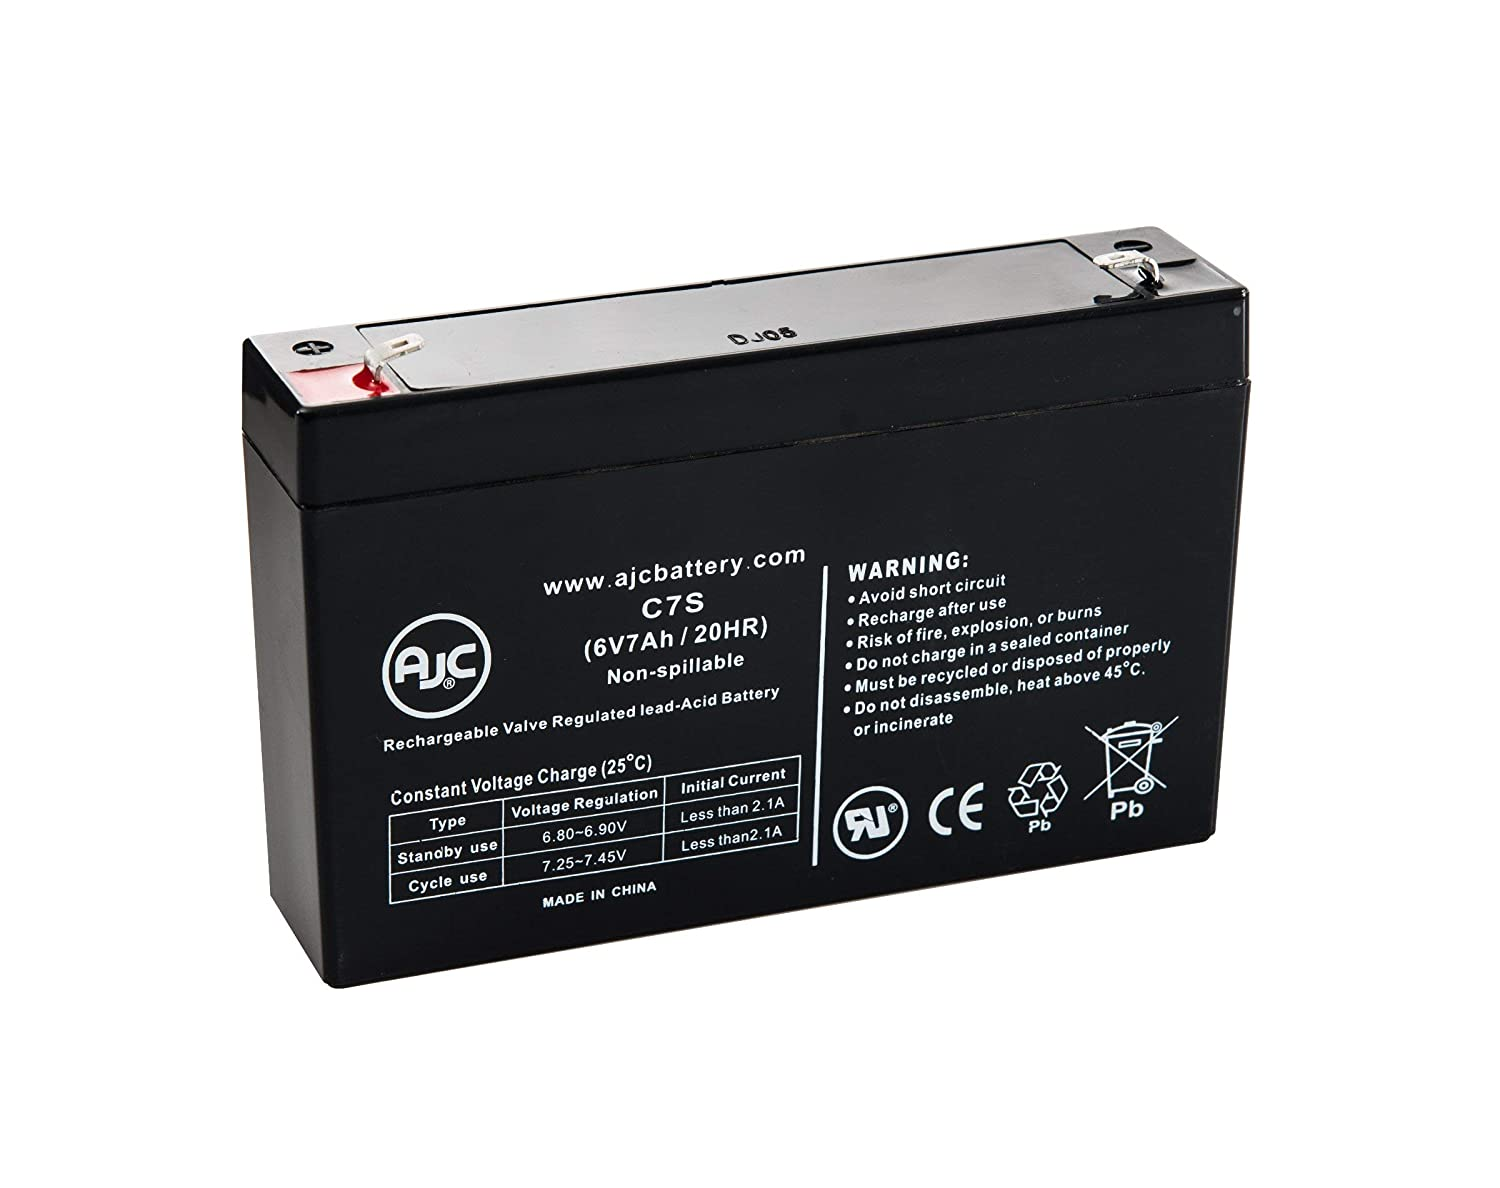 Portalac GS PE6V7.2F1 6V 7Ah Emergency Light Battery - This is an AJC Brand Replacement AJC Battery